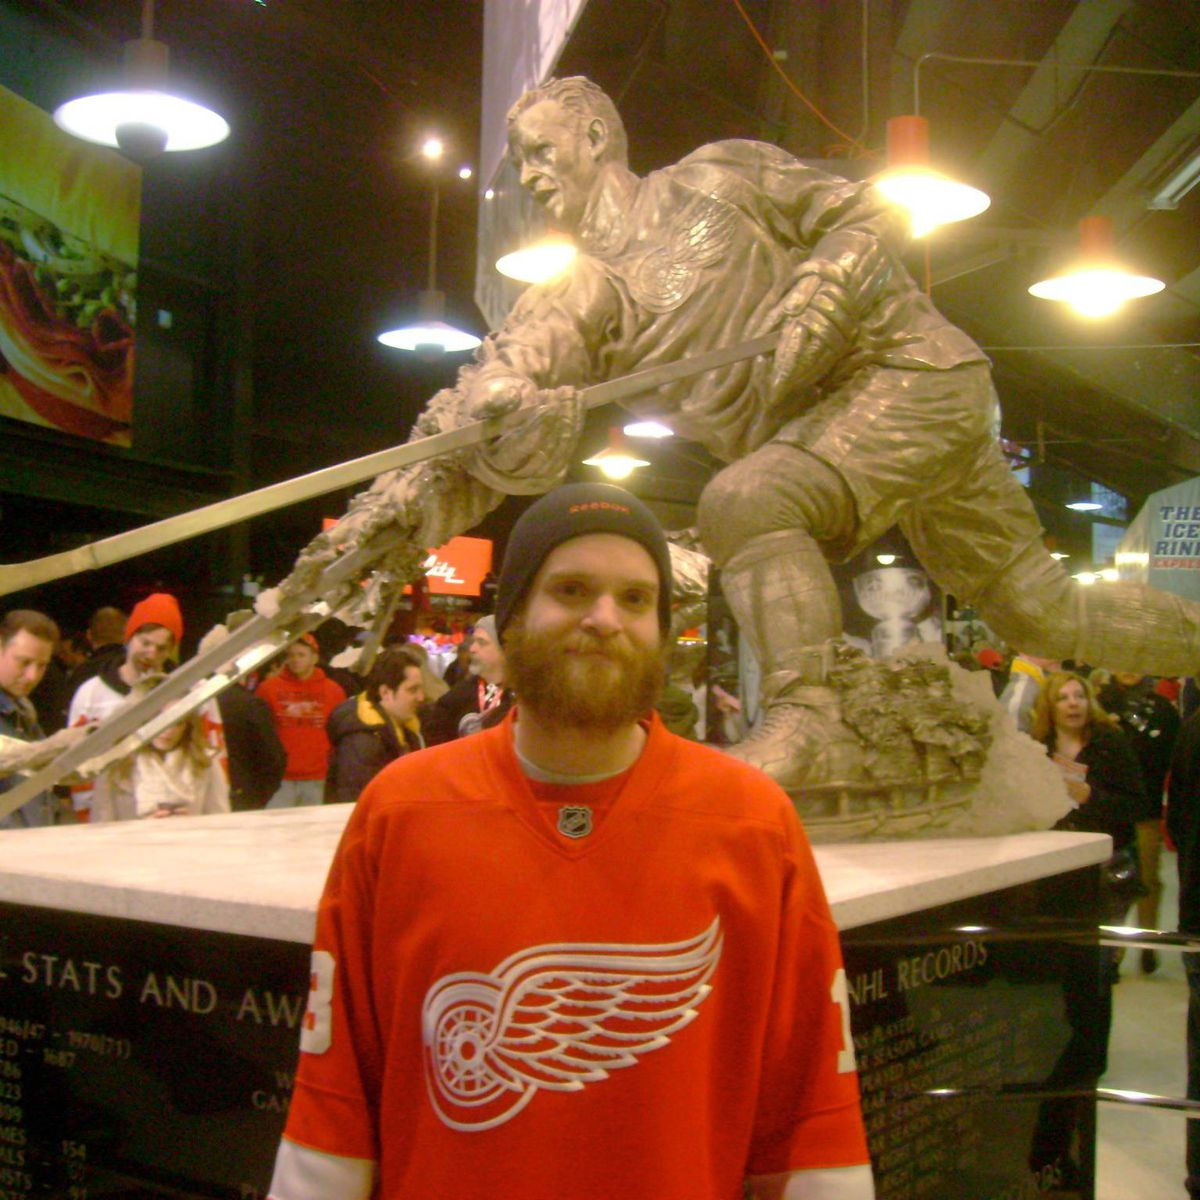 My first time at JLA 2013